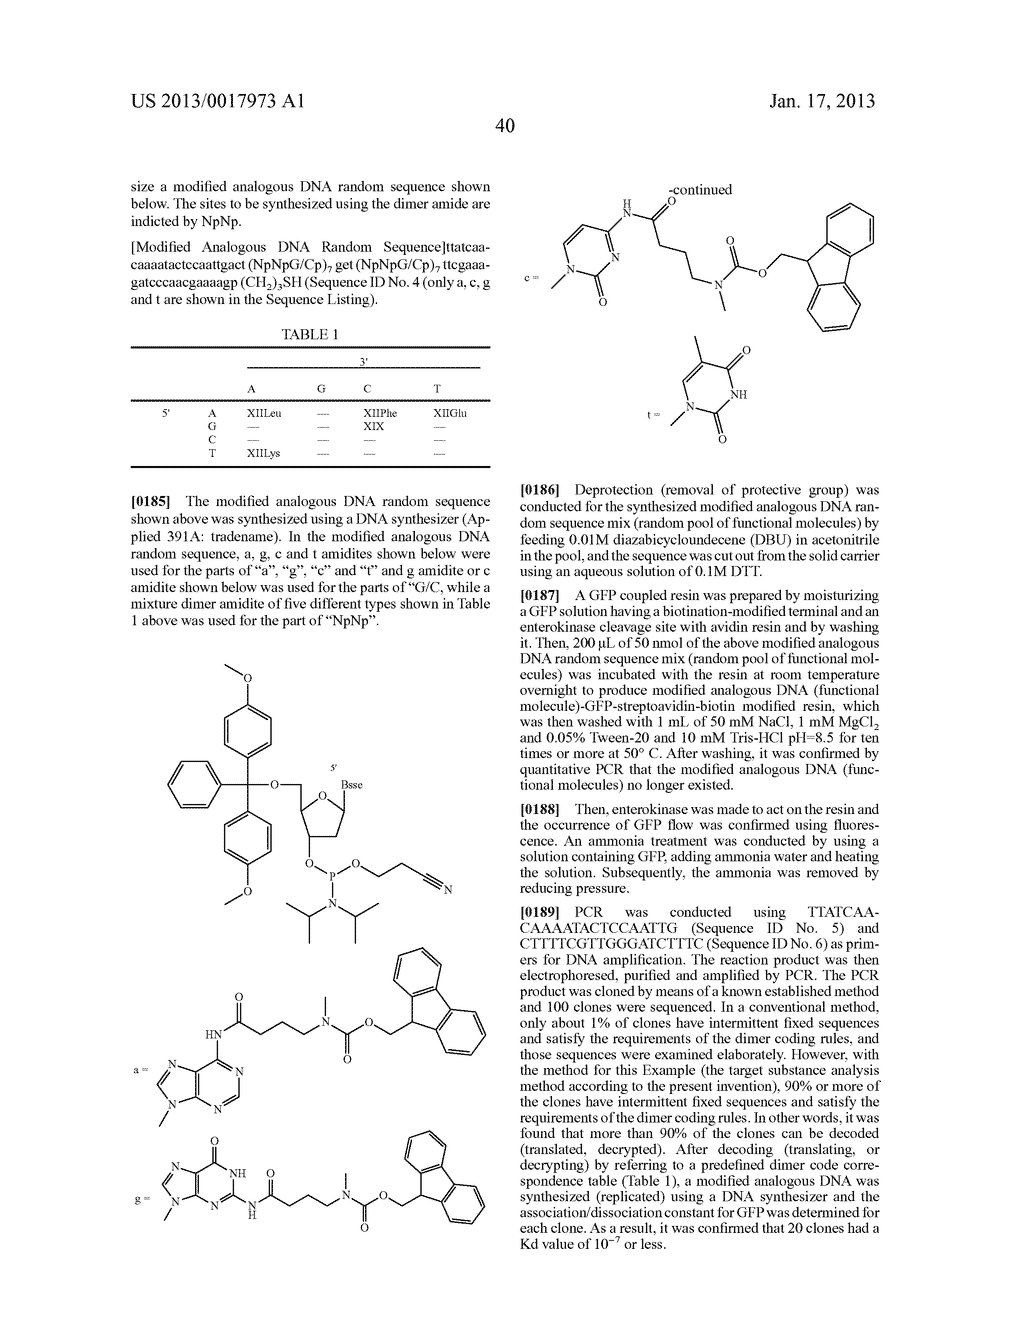 FUNCTIONAL MOLECULE, FUNCTIONAL MOLECULE SYNTHESIZING AMIDITE AND TARGET     SUBSTANCE ANALYSIS METHOD - diagram, schematic, and image 90